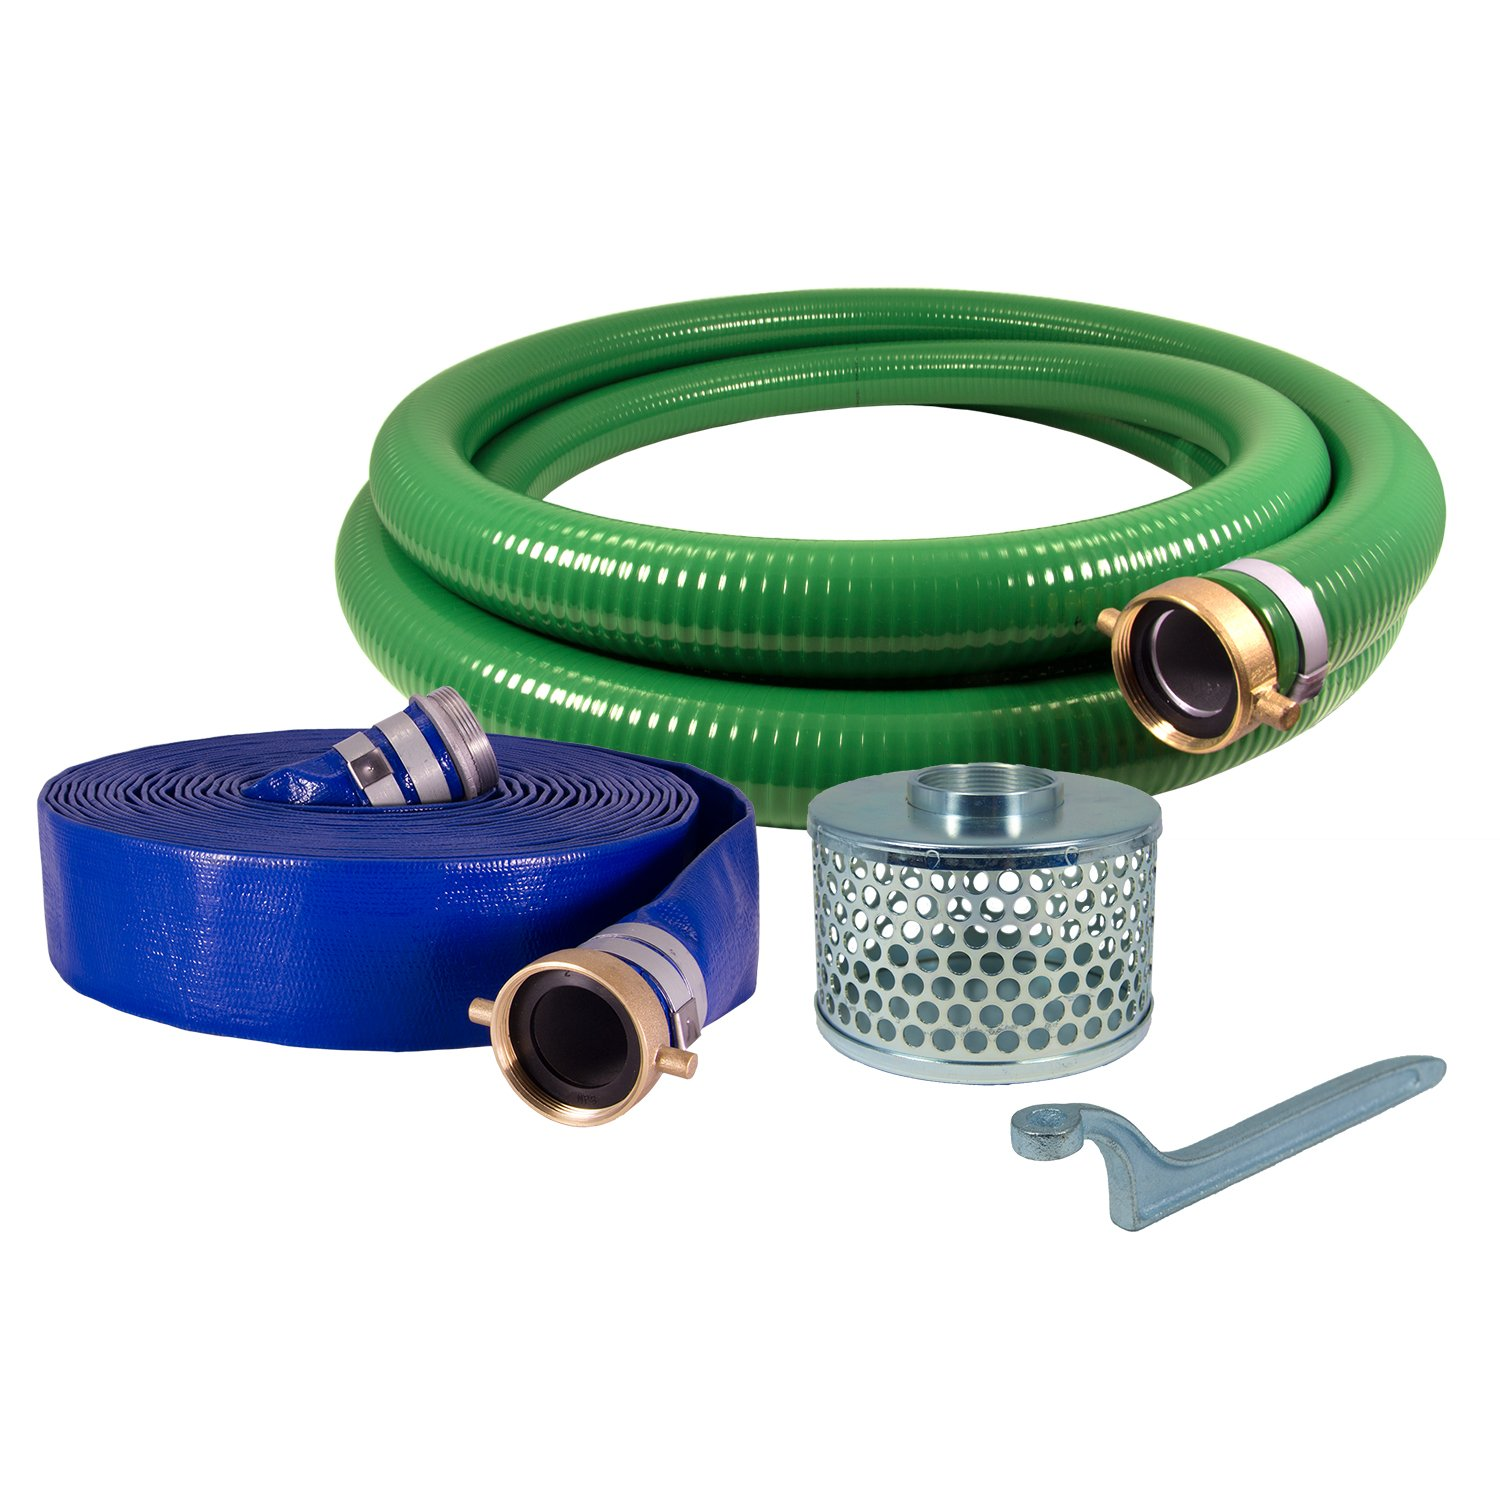 "Anderson Process 1-1/2"" PVC Water Suction and Water Discharge Hose Kit - Standard Water Pump Hose Kit w/ Male X Female Pin-Lug Couplings"